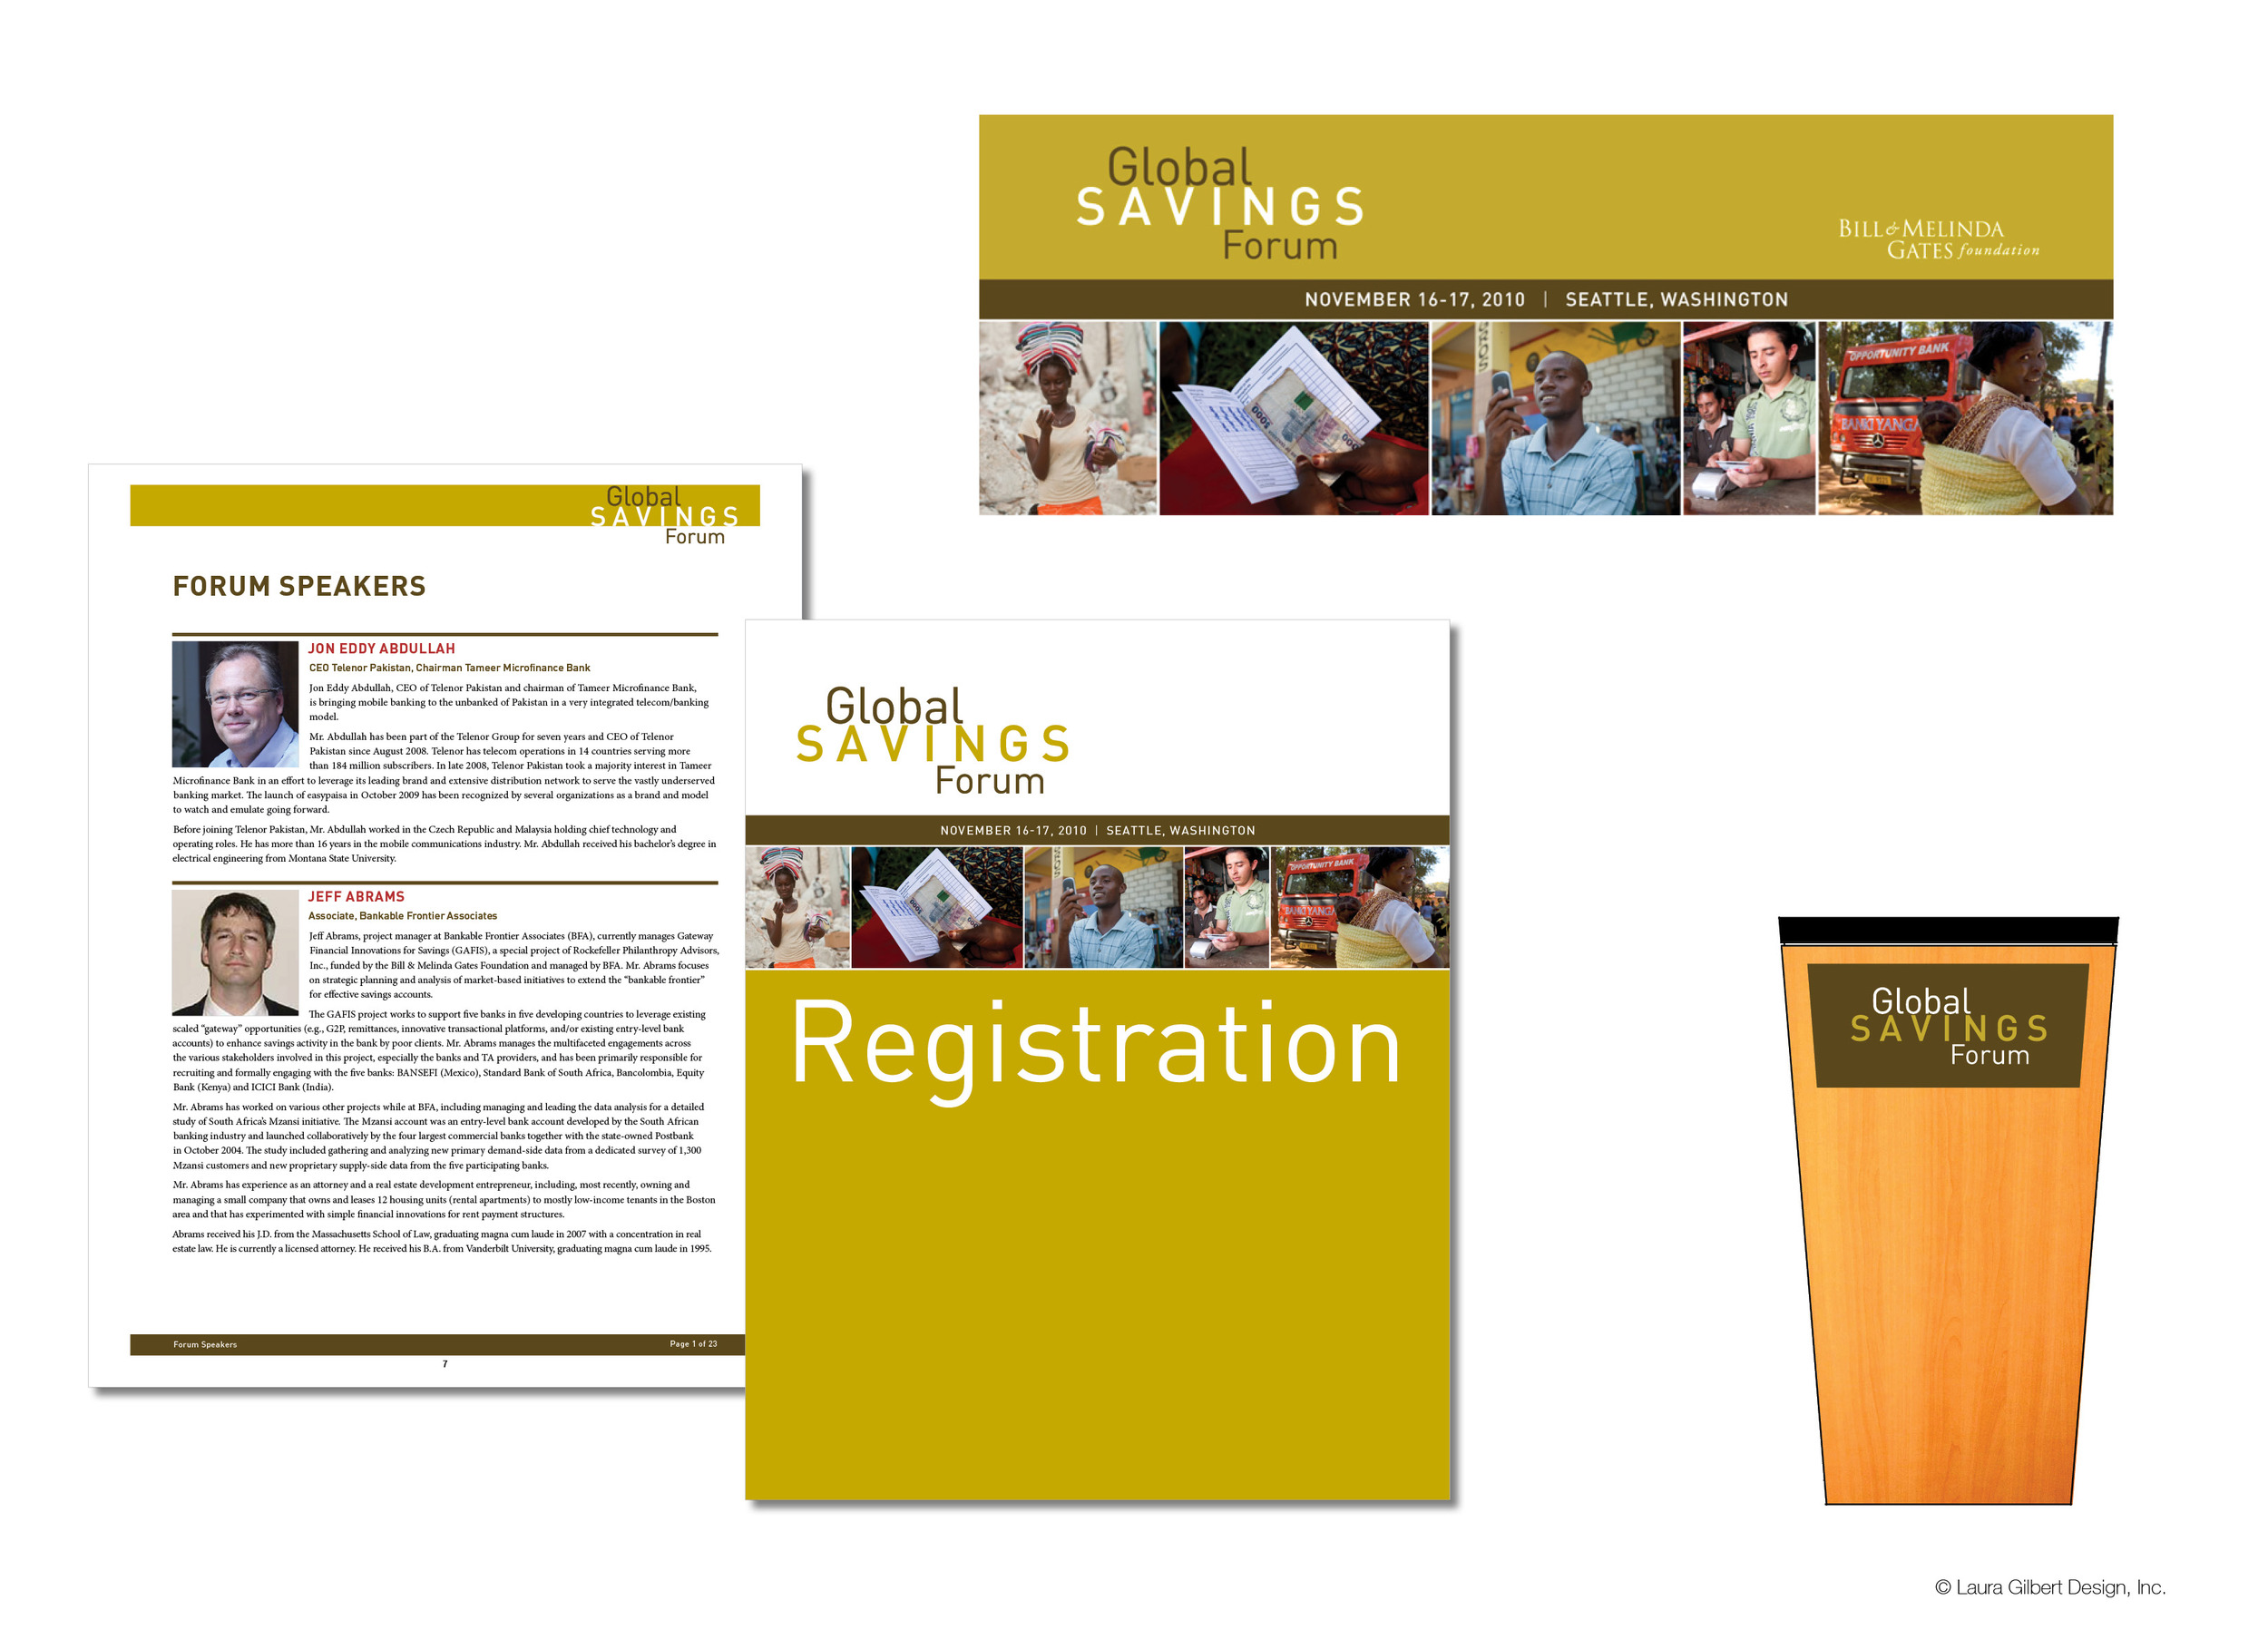 Event branding, web portal, siganage, and printed support materials for an external-facing forum on financial services to the under-served across the globe